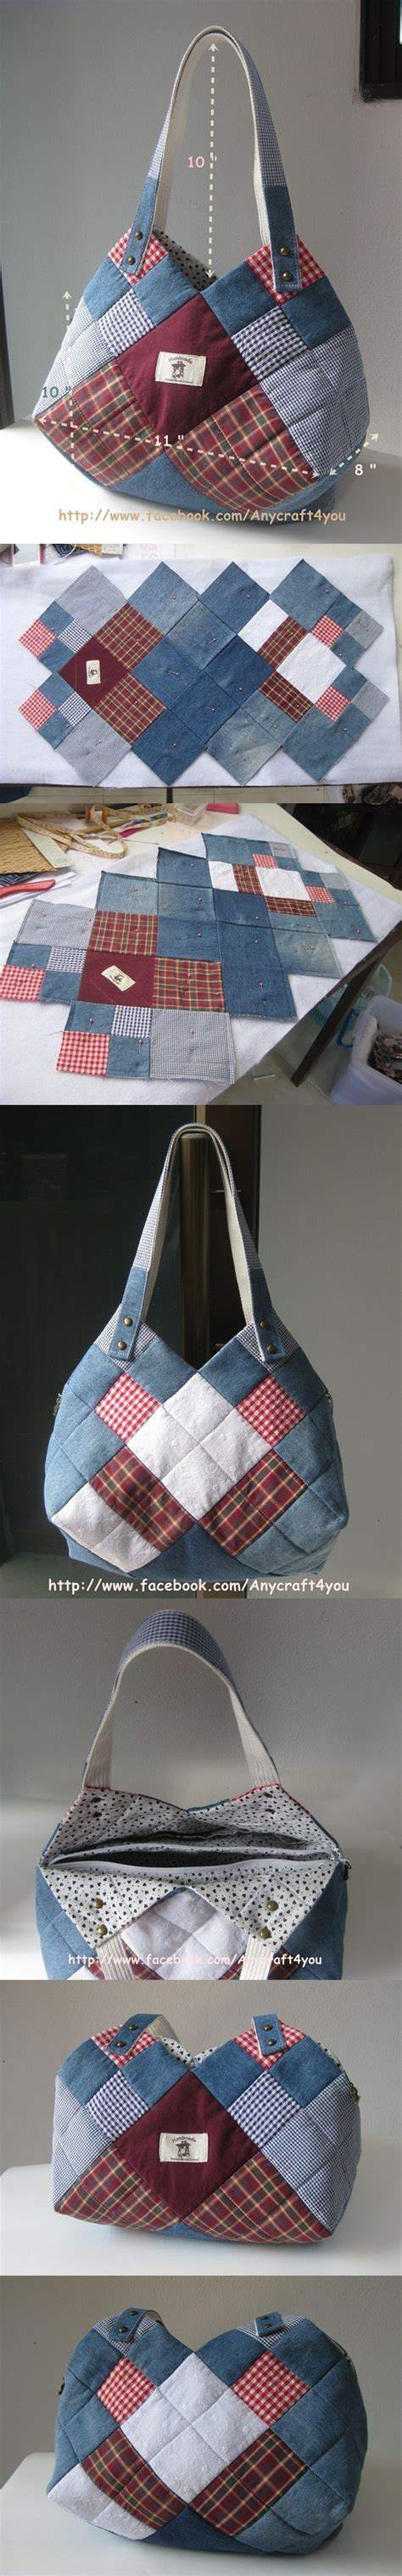 Denim Patchwork Bag Patterns Free - 1423 best images about stitch bags on purse